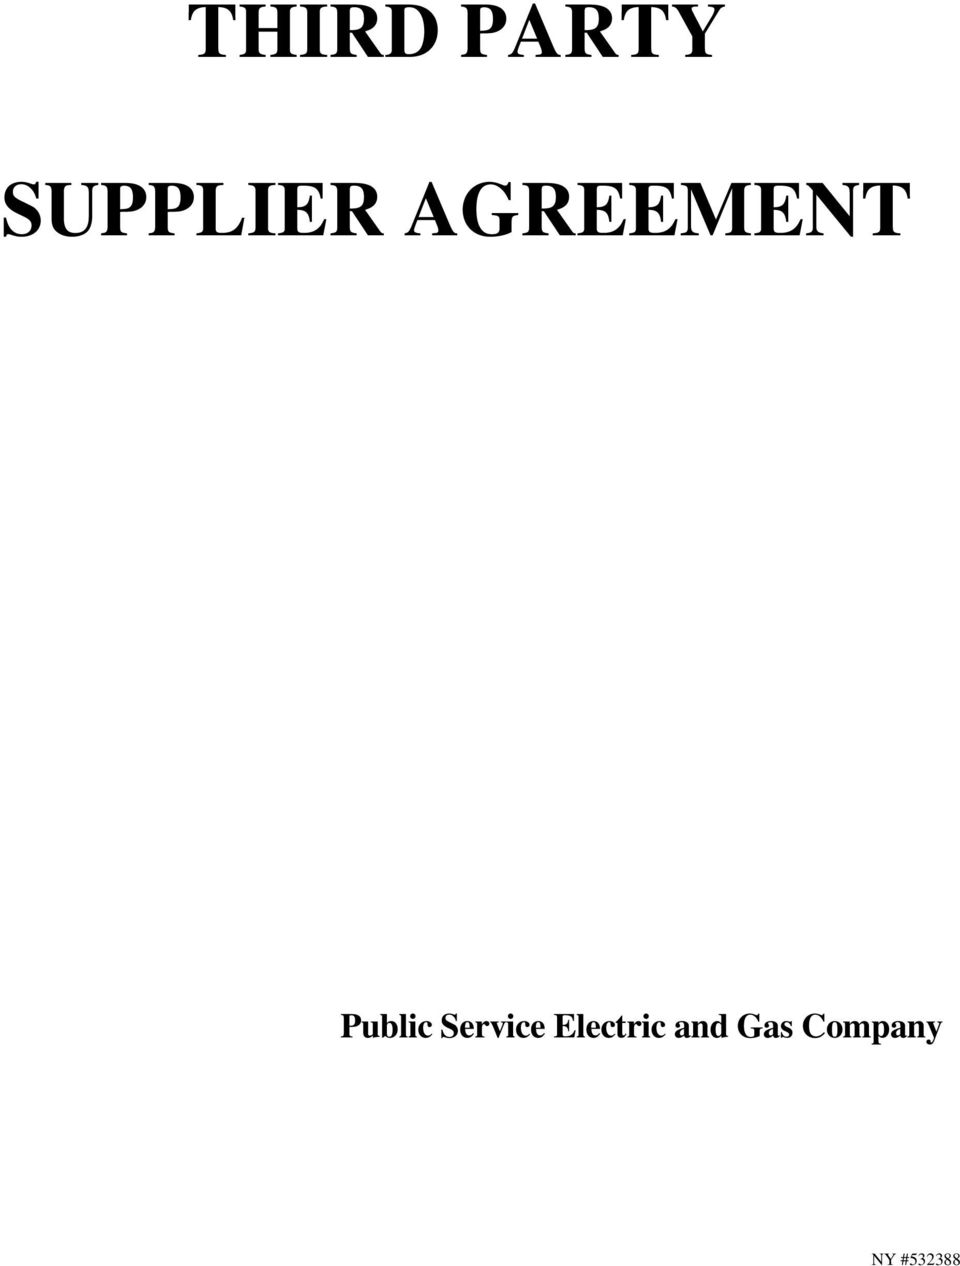 AGREEMENT Public